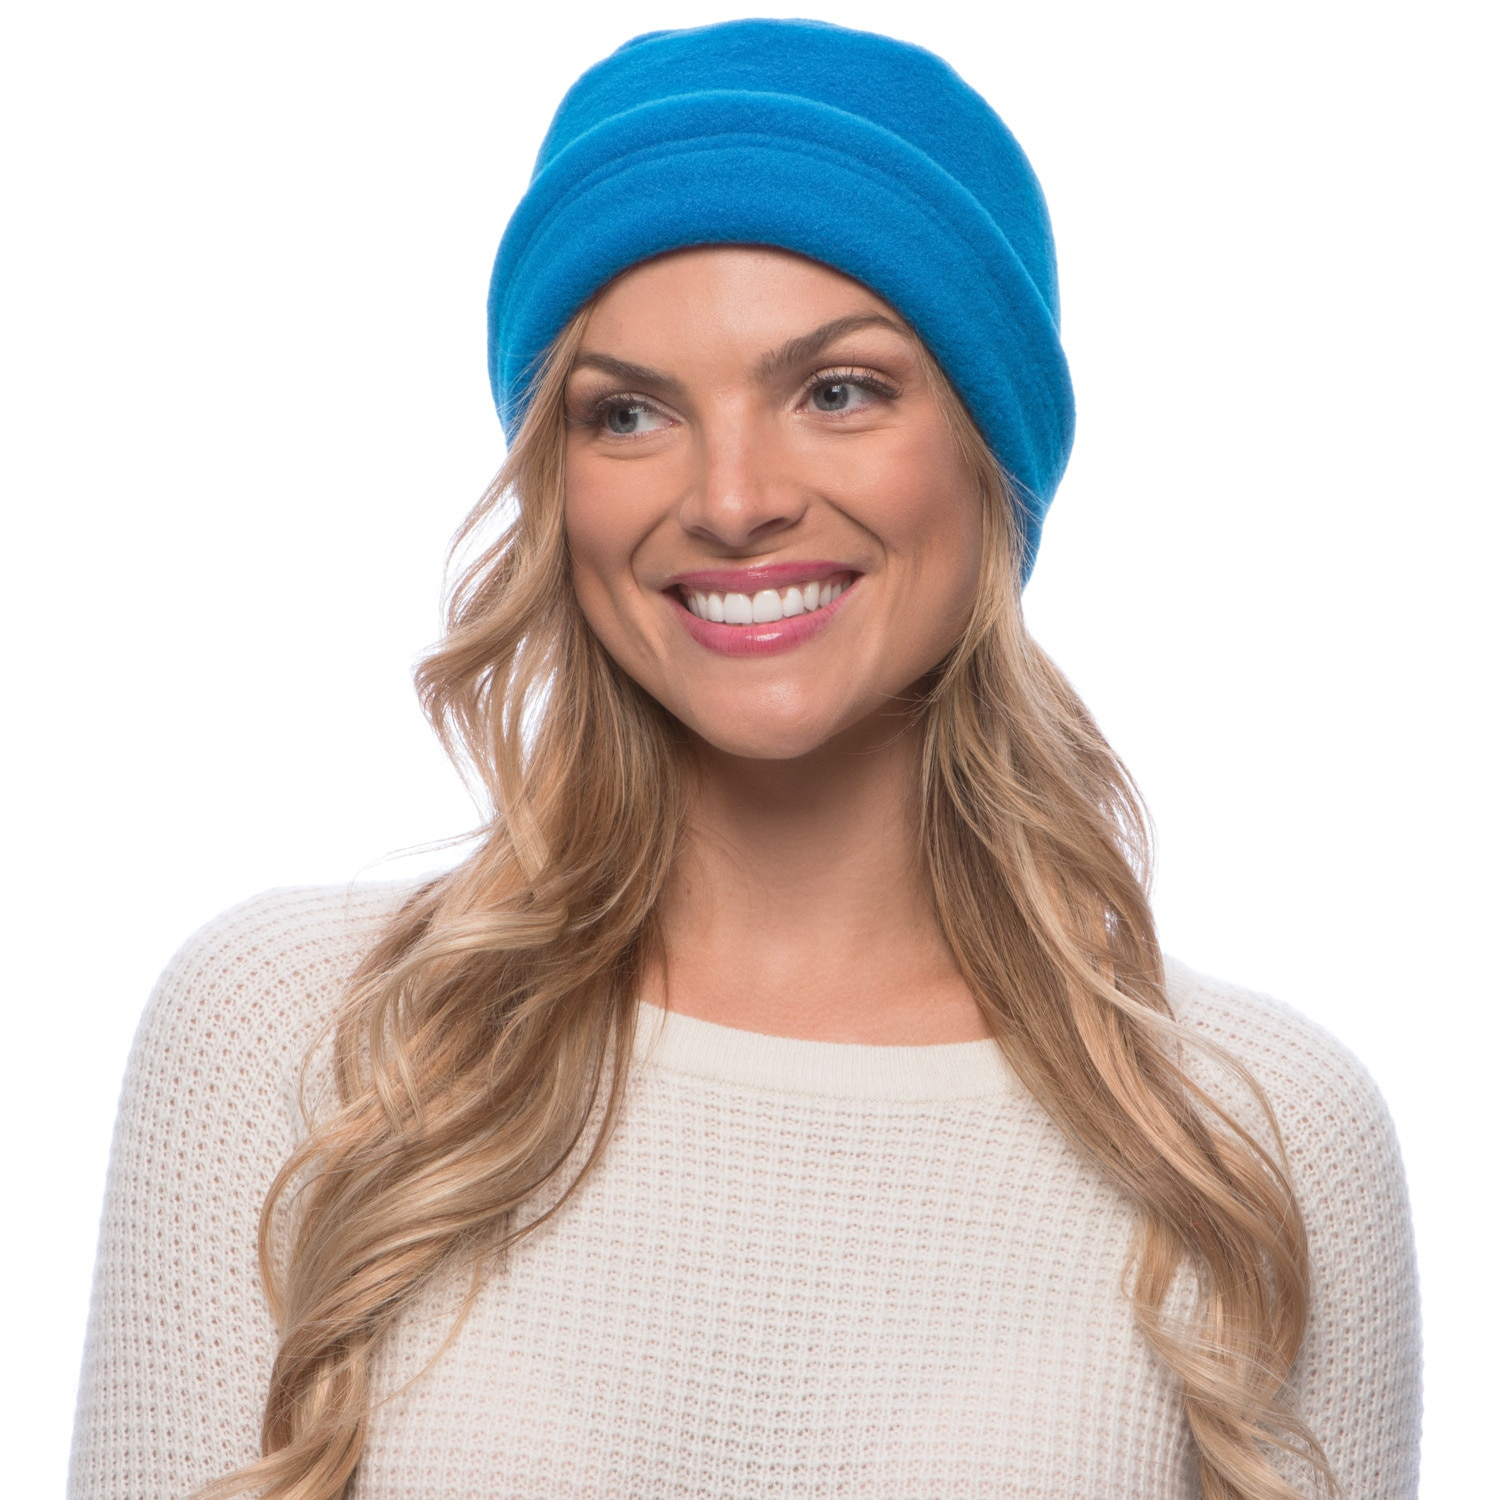 b1fd09ab4ab Shop Kenyon Women s Polartec Polarskins Fleece Toque Hat - Free Shipping On  Orders Over  45 - Overstock - 10089114